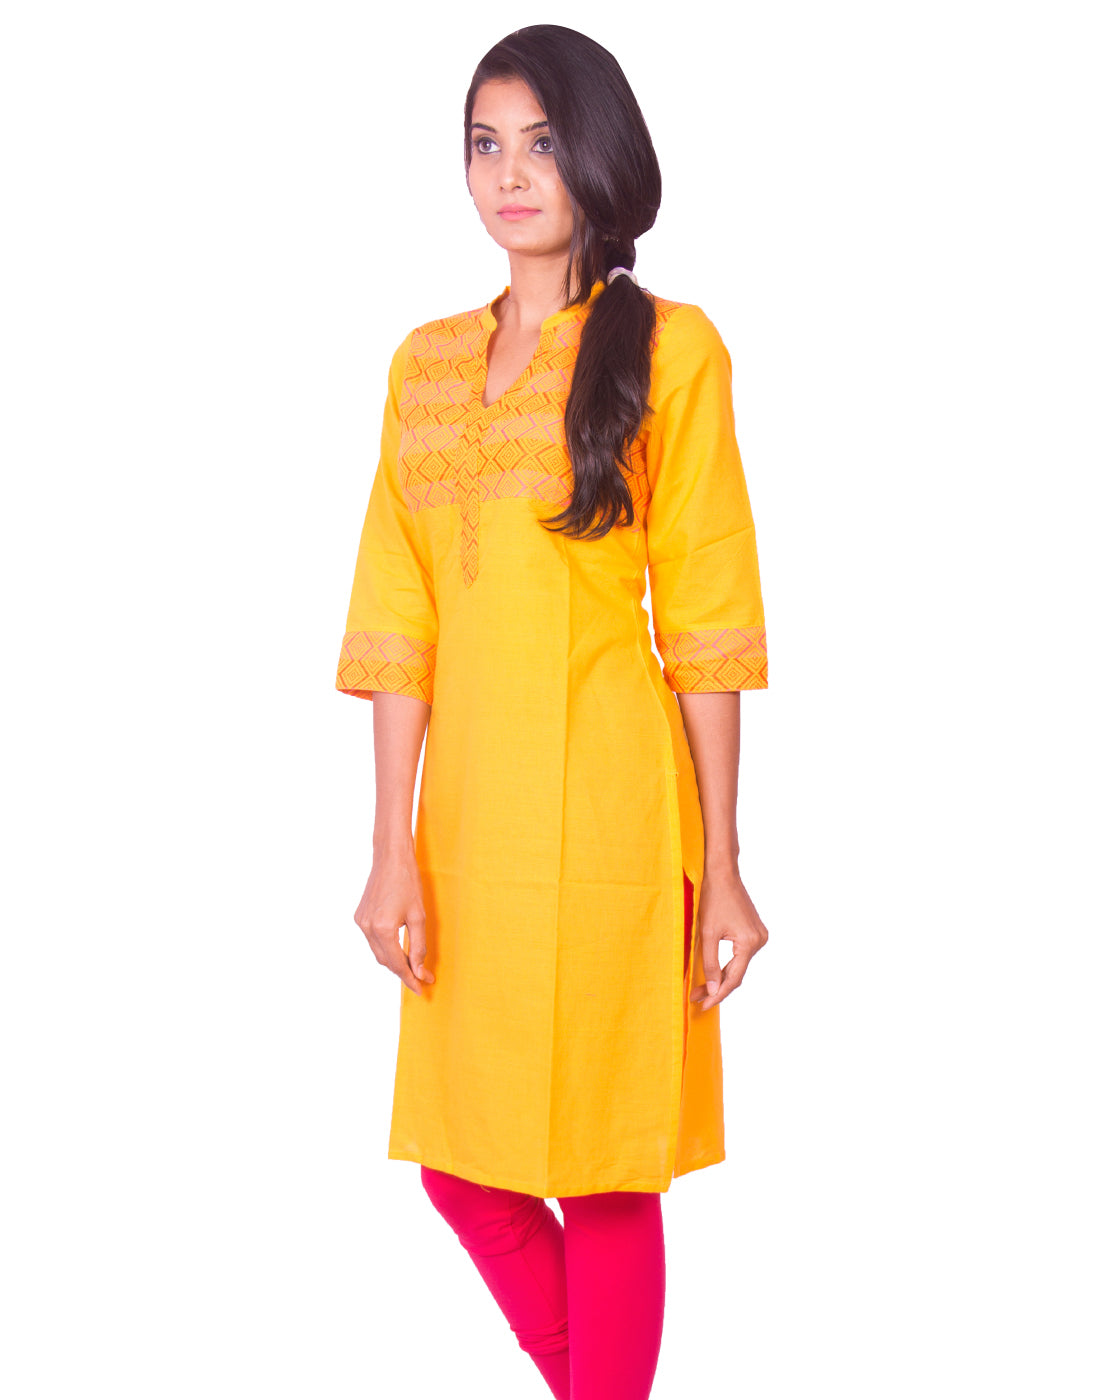 Joshuah's Golden Yellow South Cotton Dobby Long Sleeves Kurtiget best offers deals free online at buythevalue.in